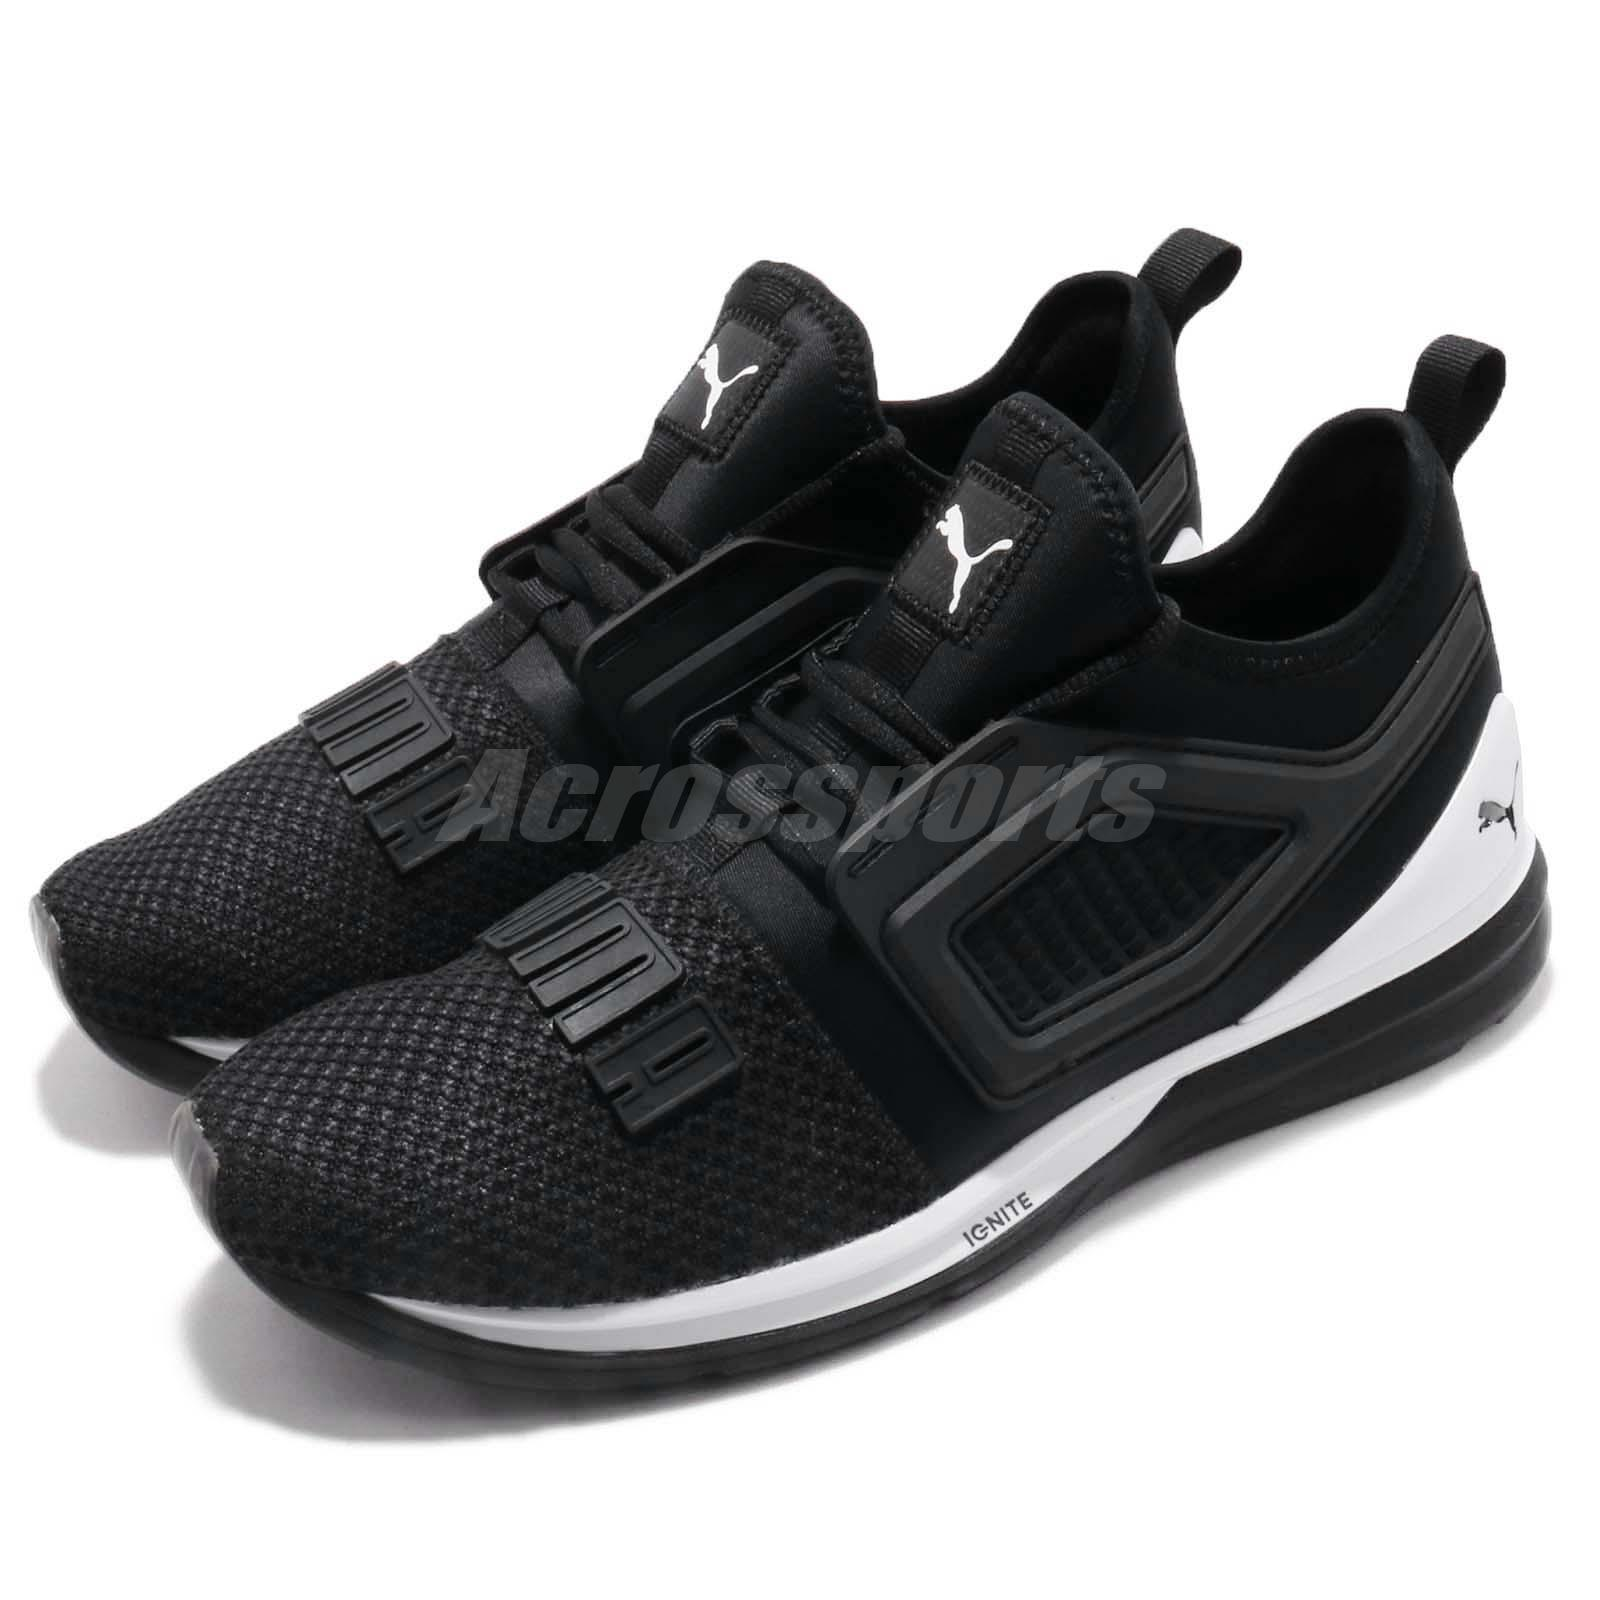 Details about Puma Ignite Limitless 2 Black White Men Running Training  Shoes Sneaker 191293-01 1aee1da08